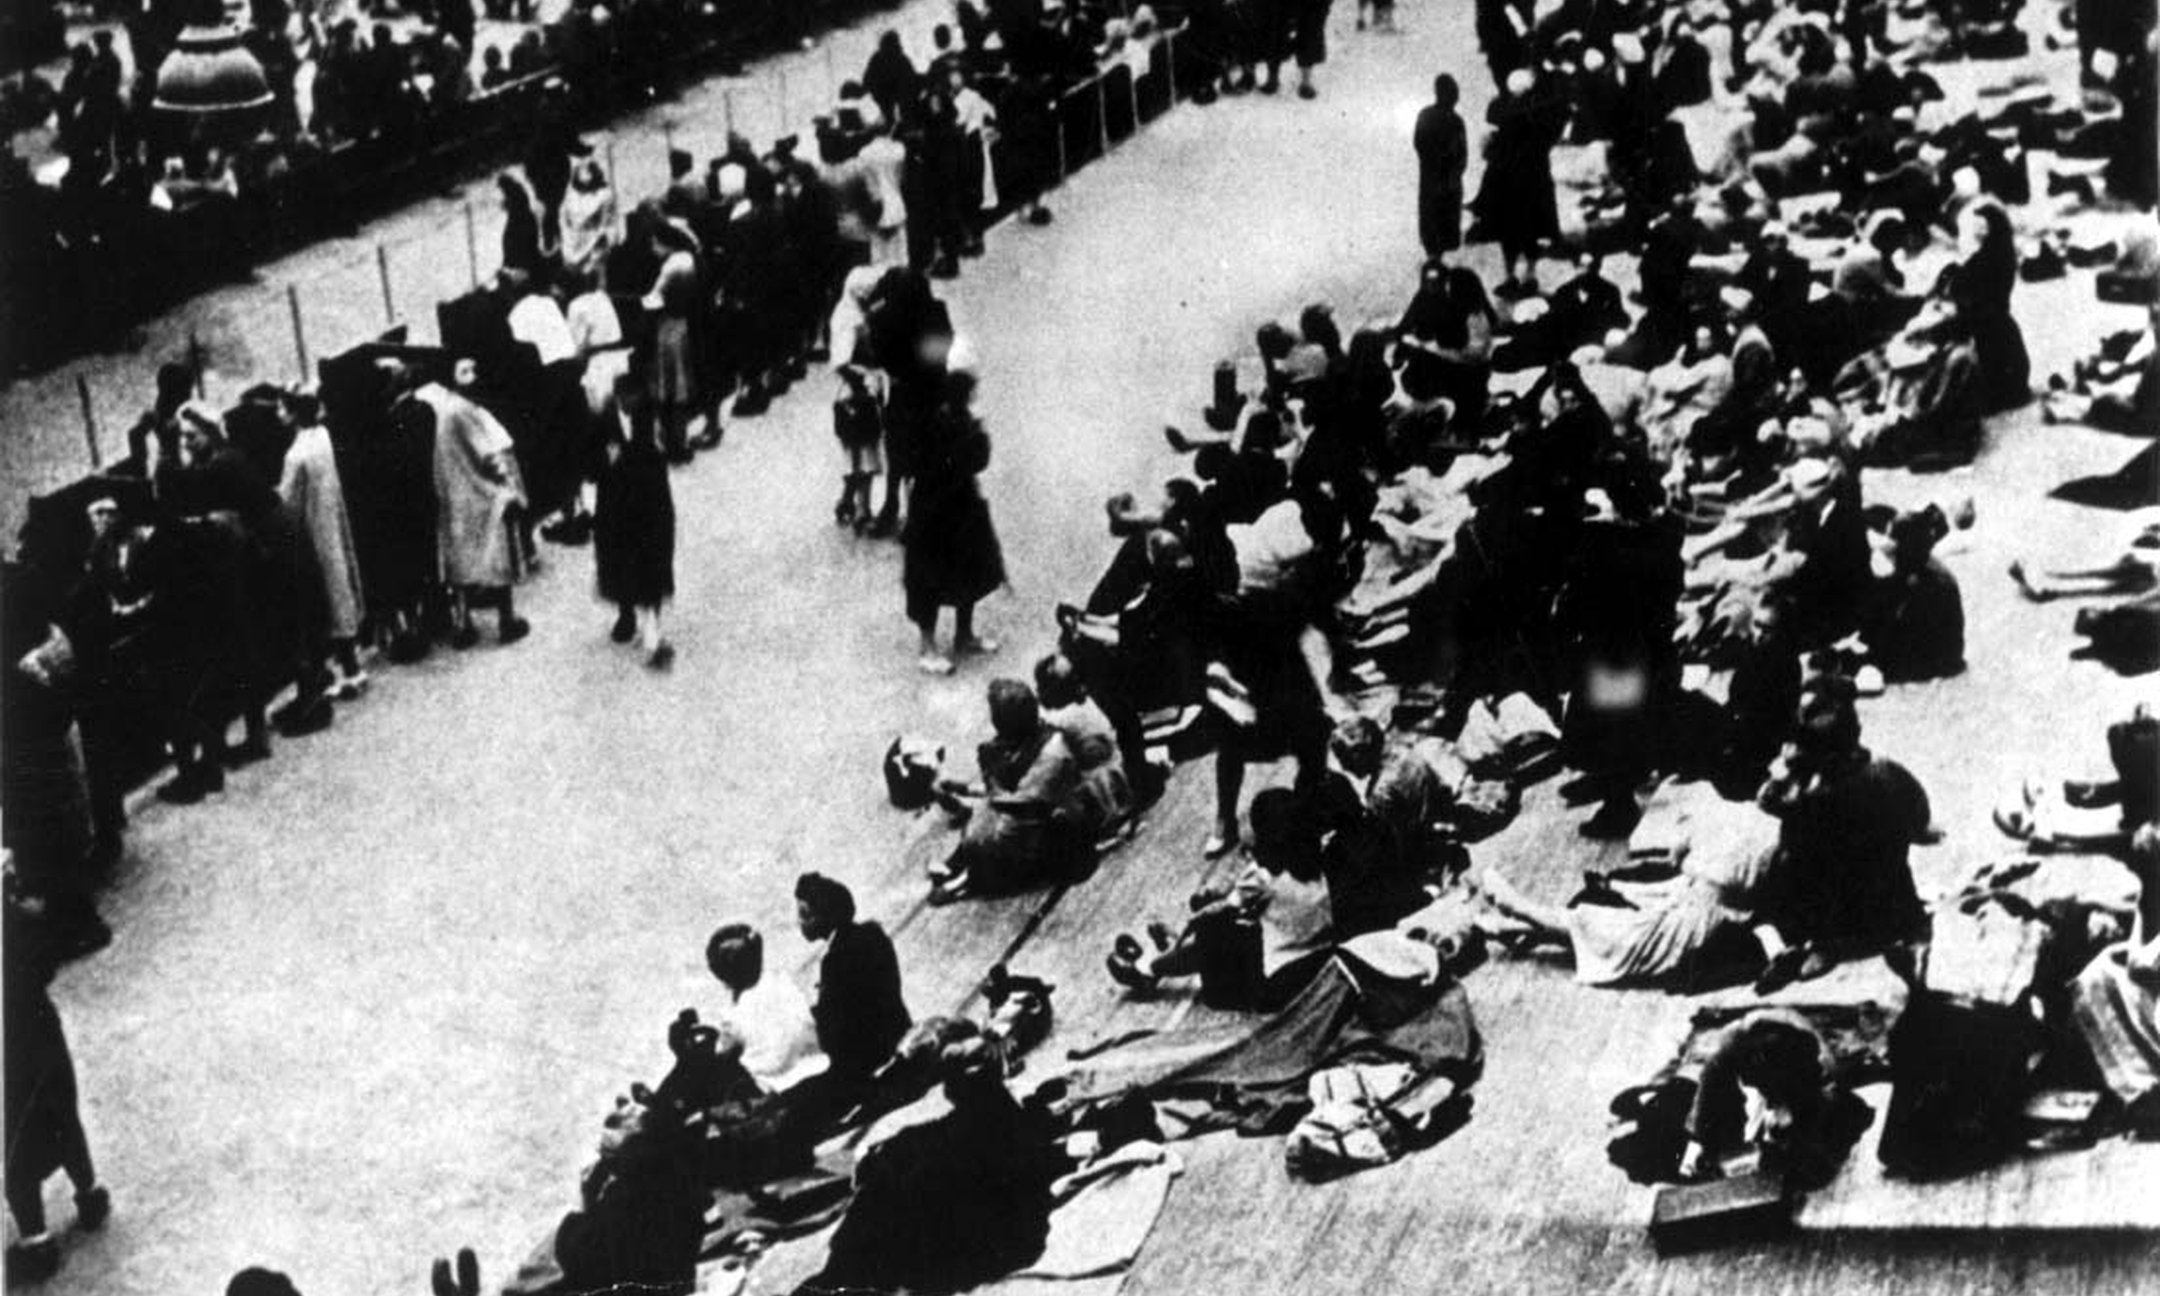 16 July 1942. By order of the Nazis, the French police arrests more than 13,000 foreign Jews, among whom are 4,000 children. Most of them die in Auschwitz.